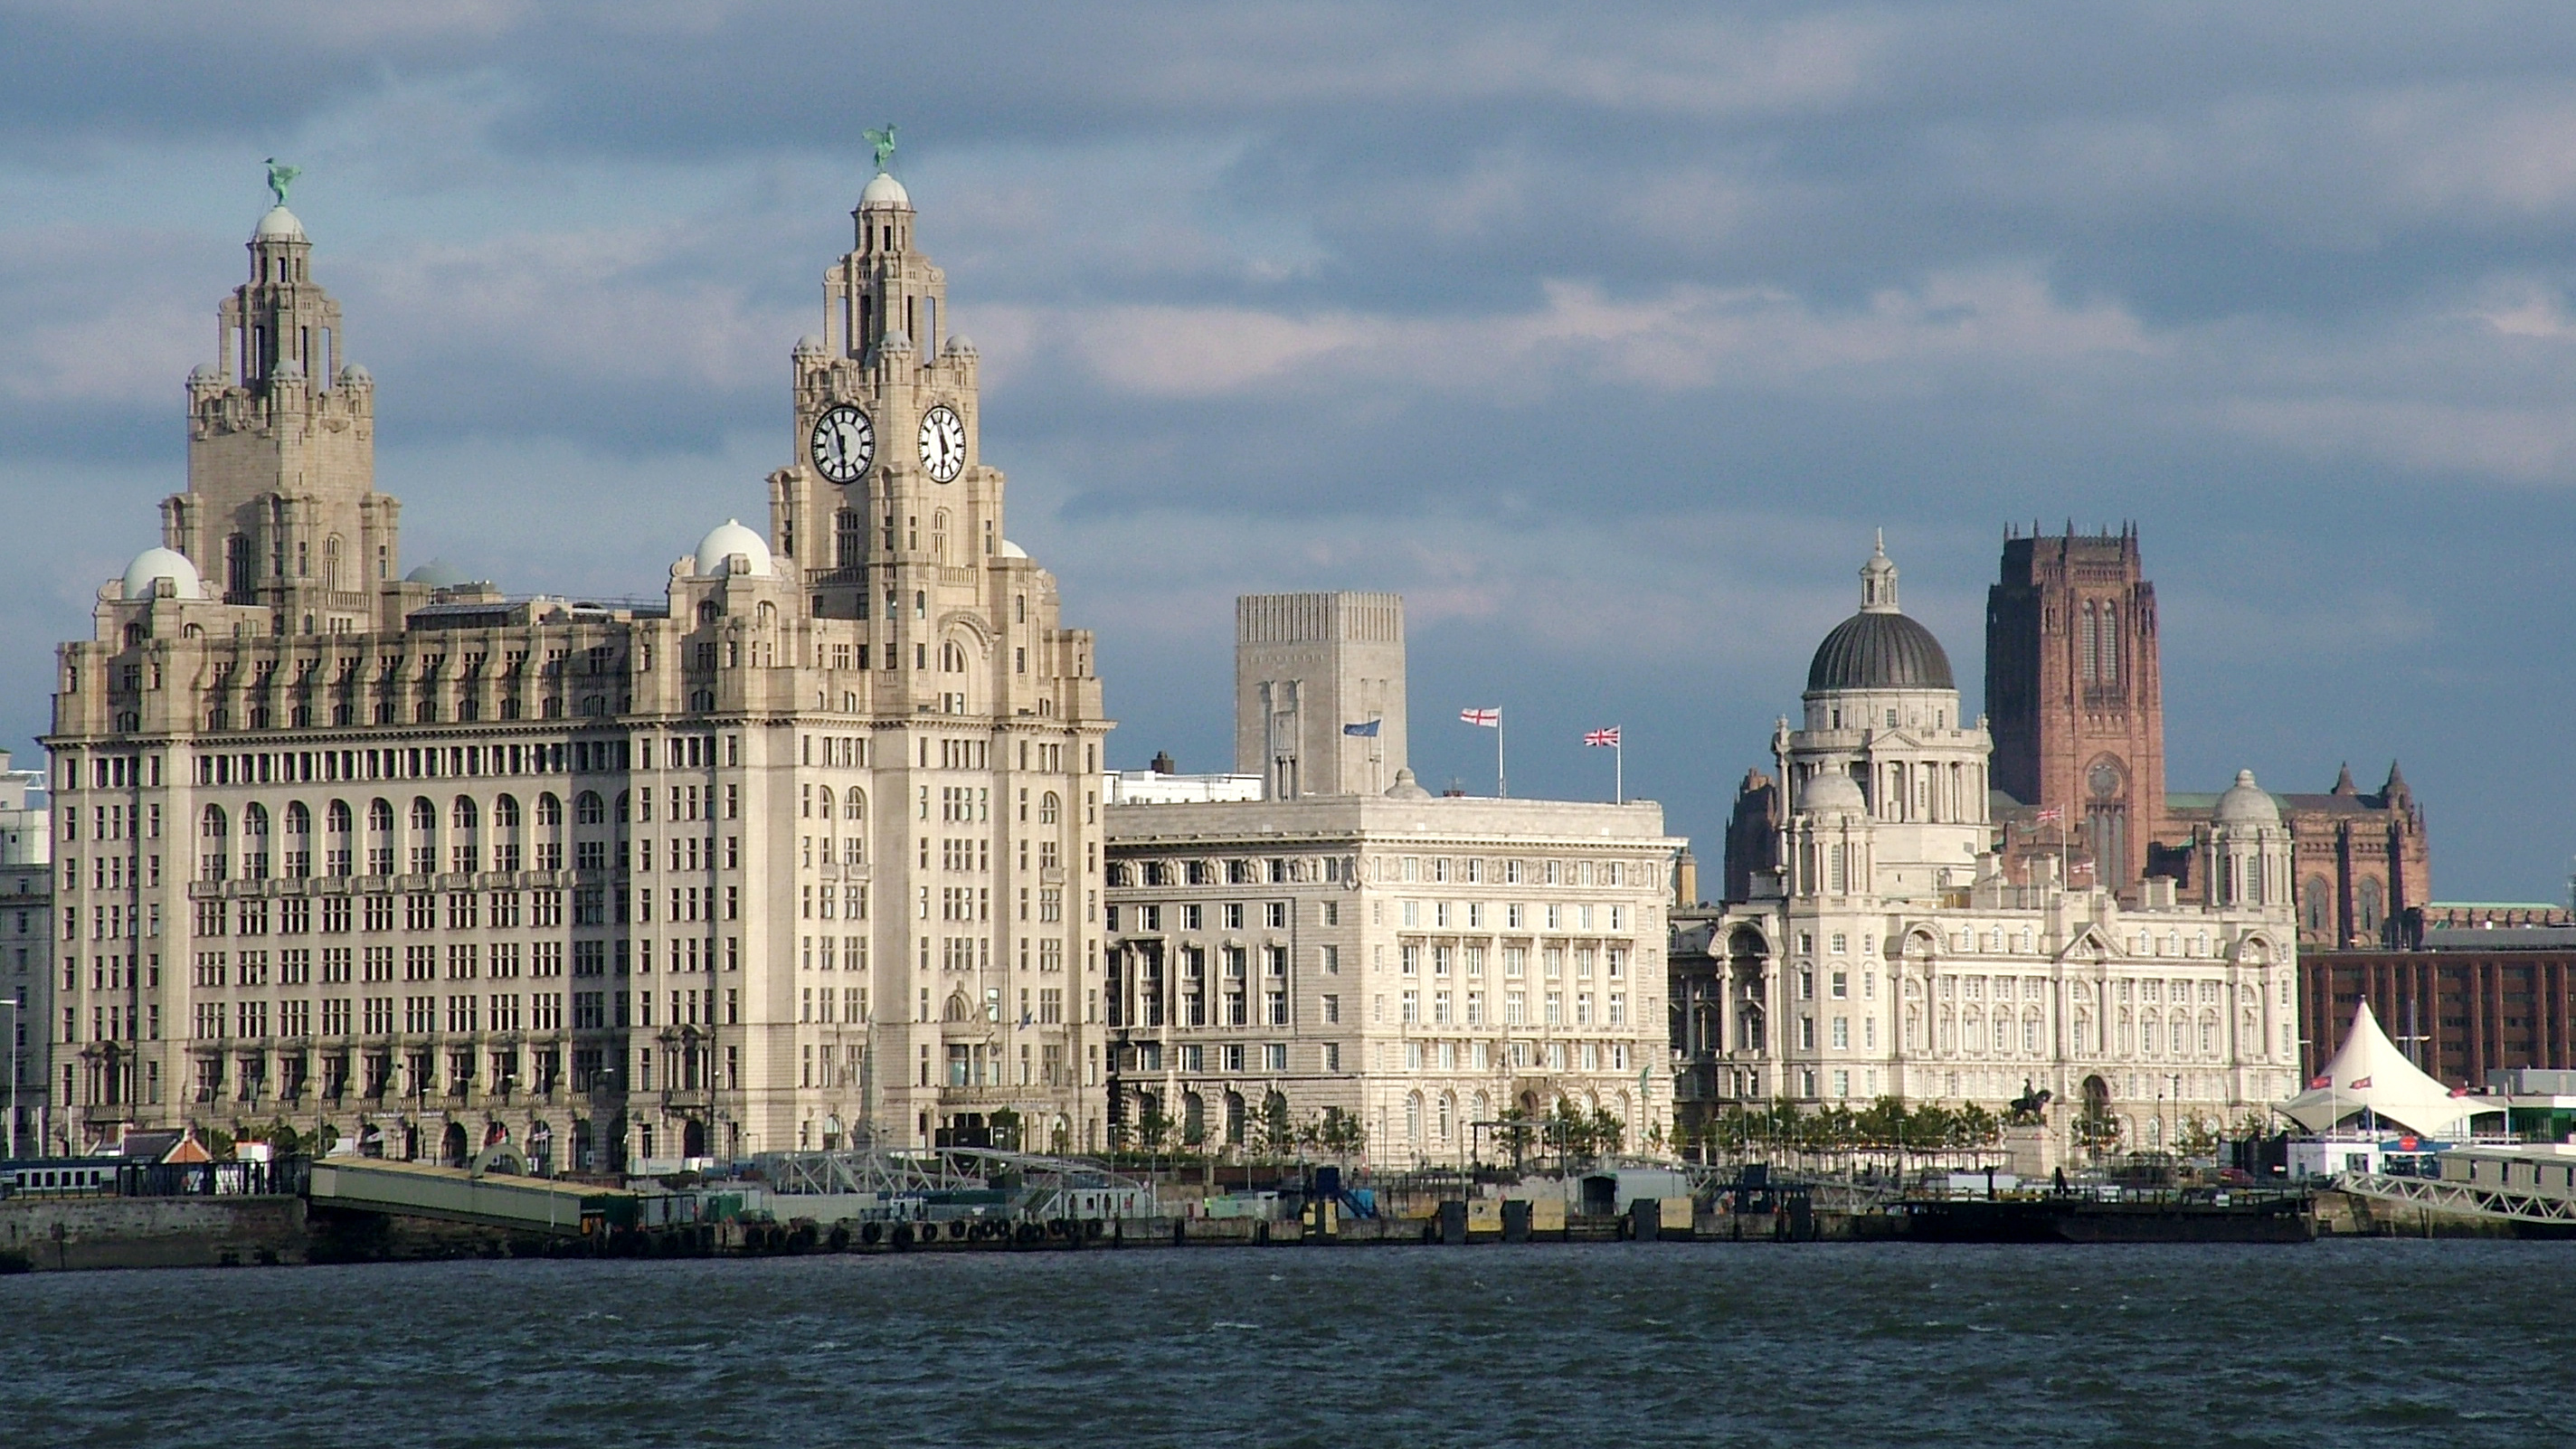 Dating sites in liverpool